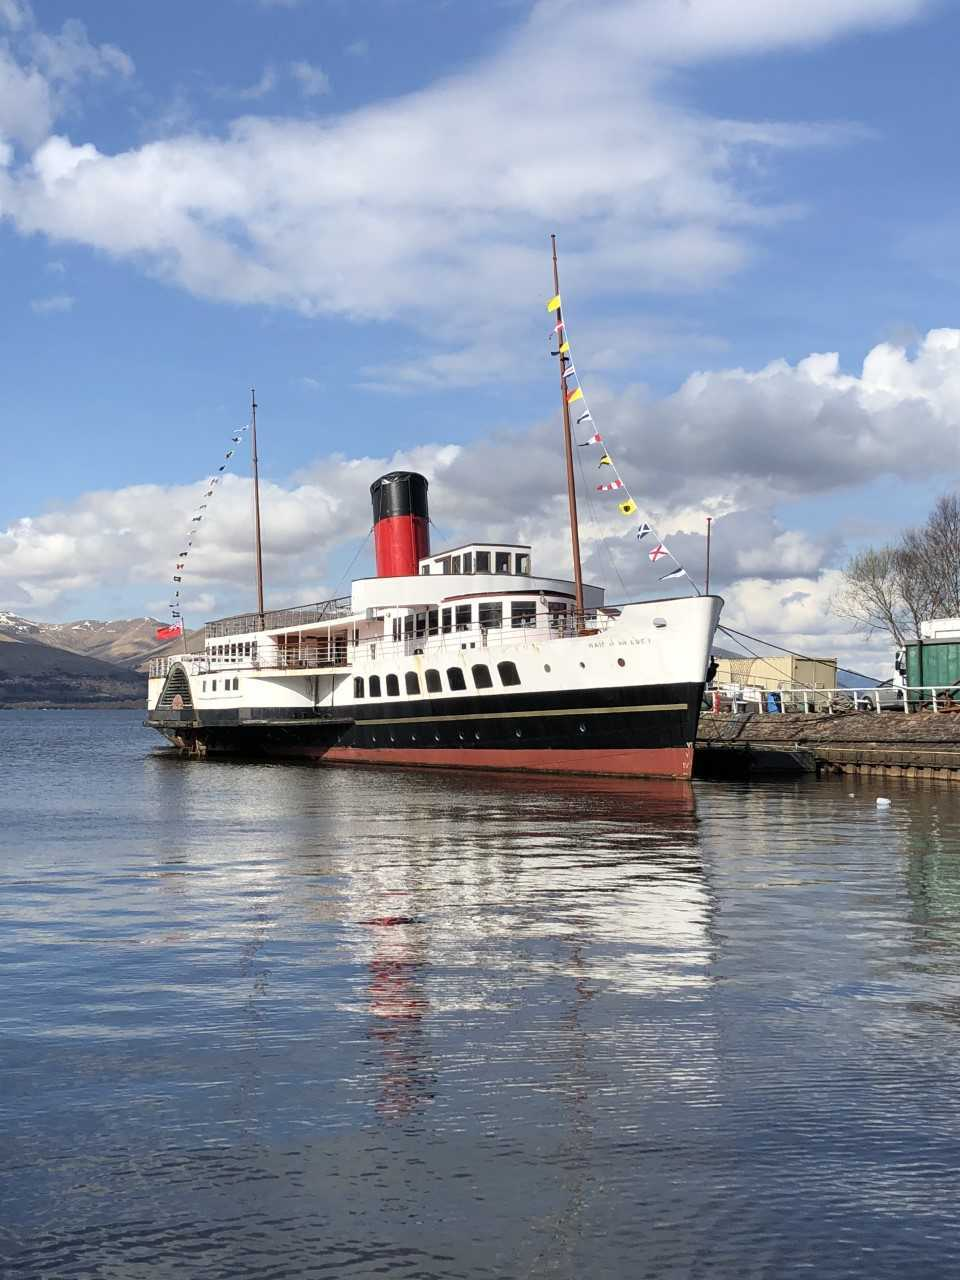 The Maid of the Loch reopens for the season ahead on Good Friday, April 19